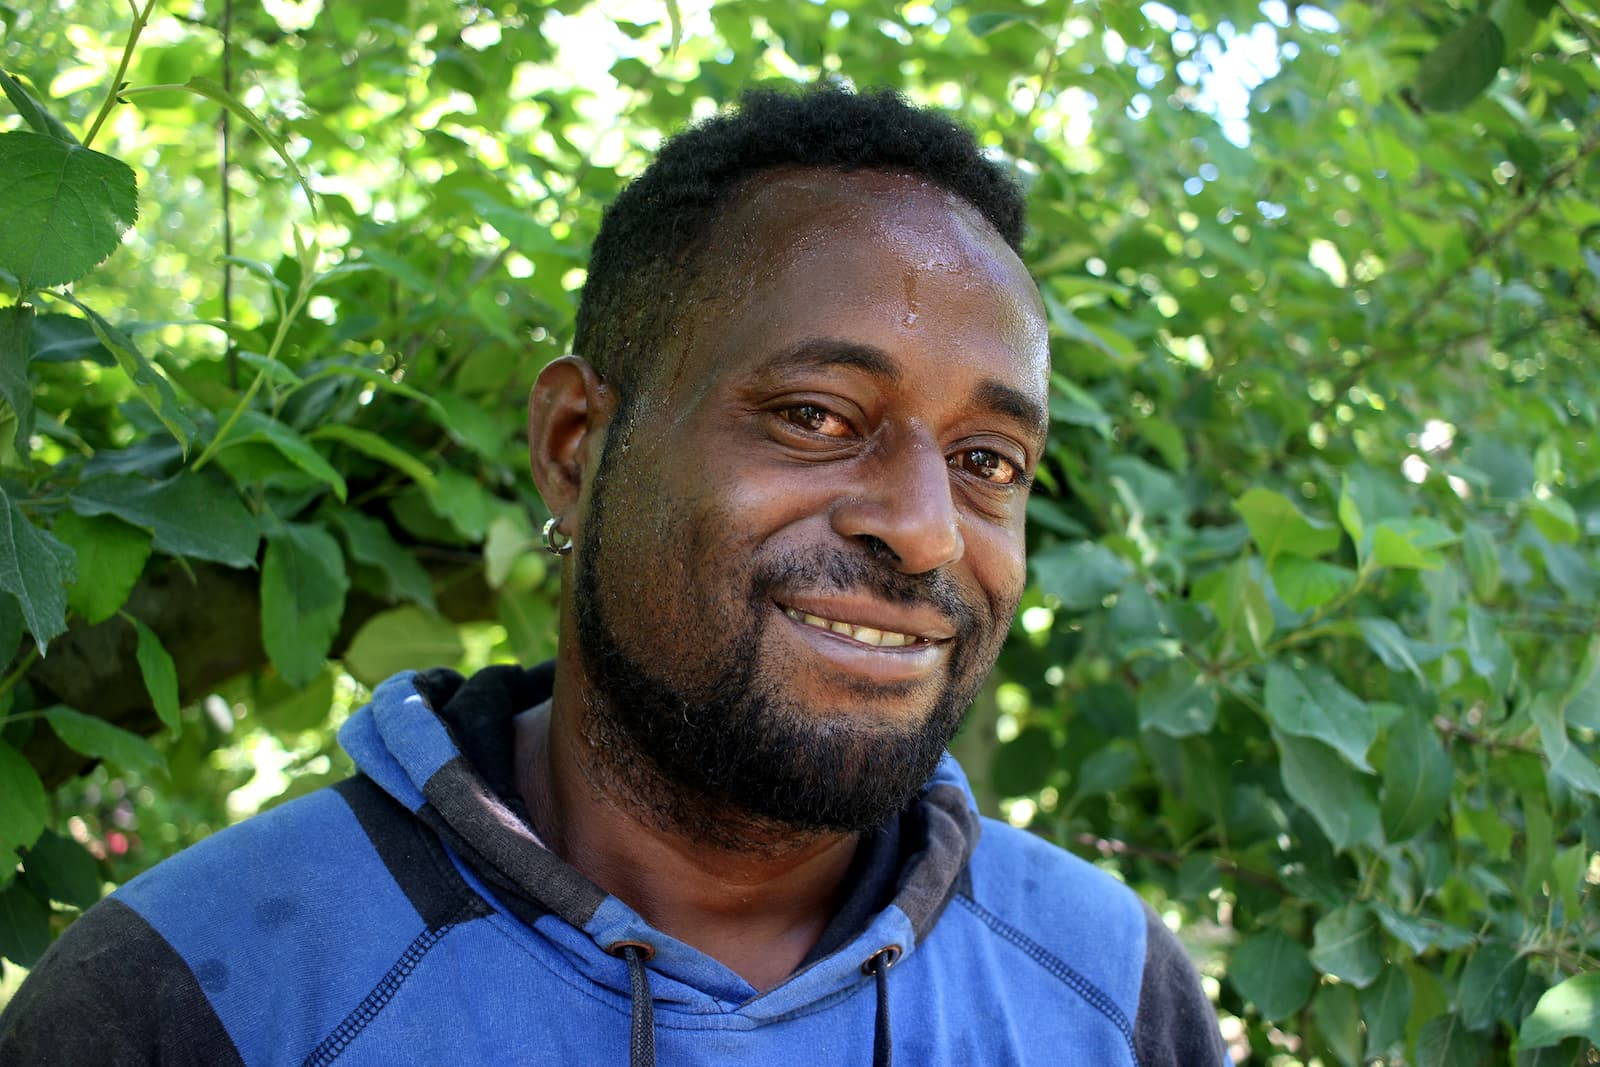 Michael has travelled from Vanuatu to work in New Zealand